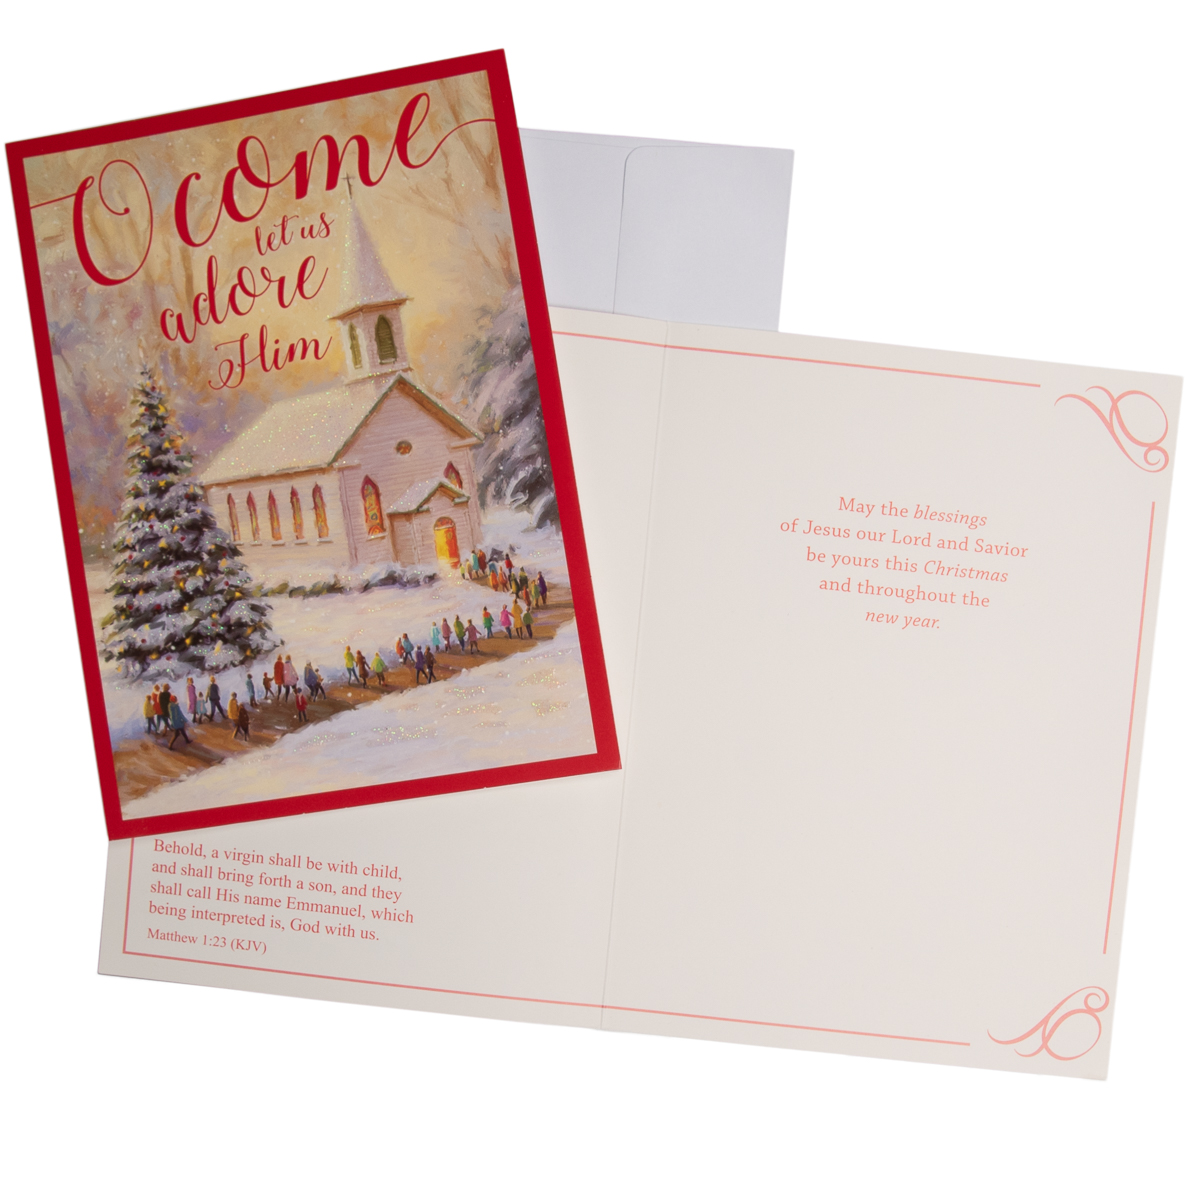 48pk-Merry-Christmas-Cards-Bulk-Assortment-Holiday-Card-Pack-with-Foil-amp-Glitter thumbnail 20